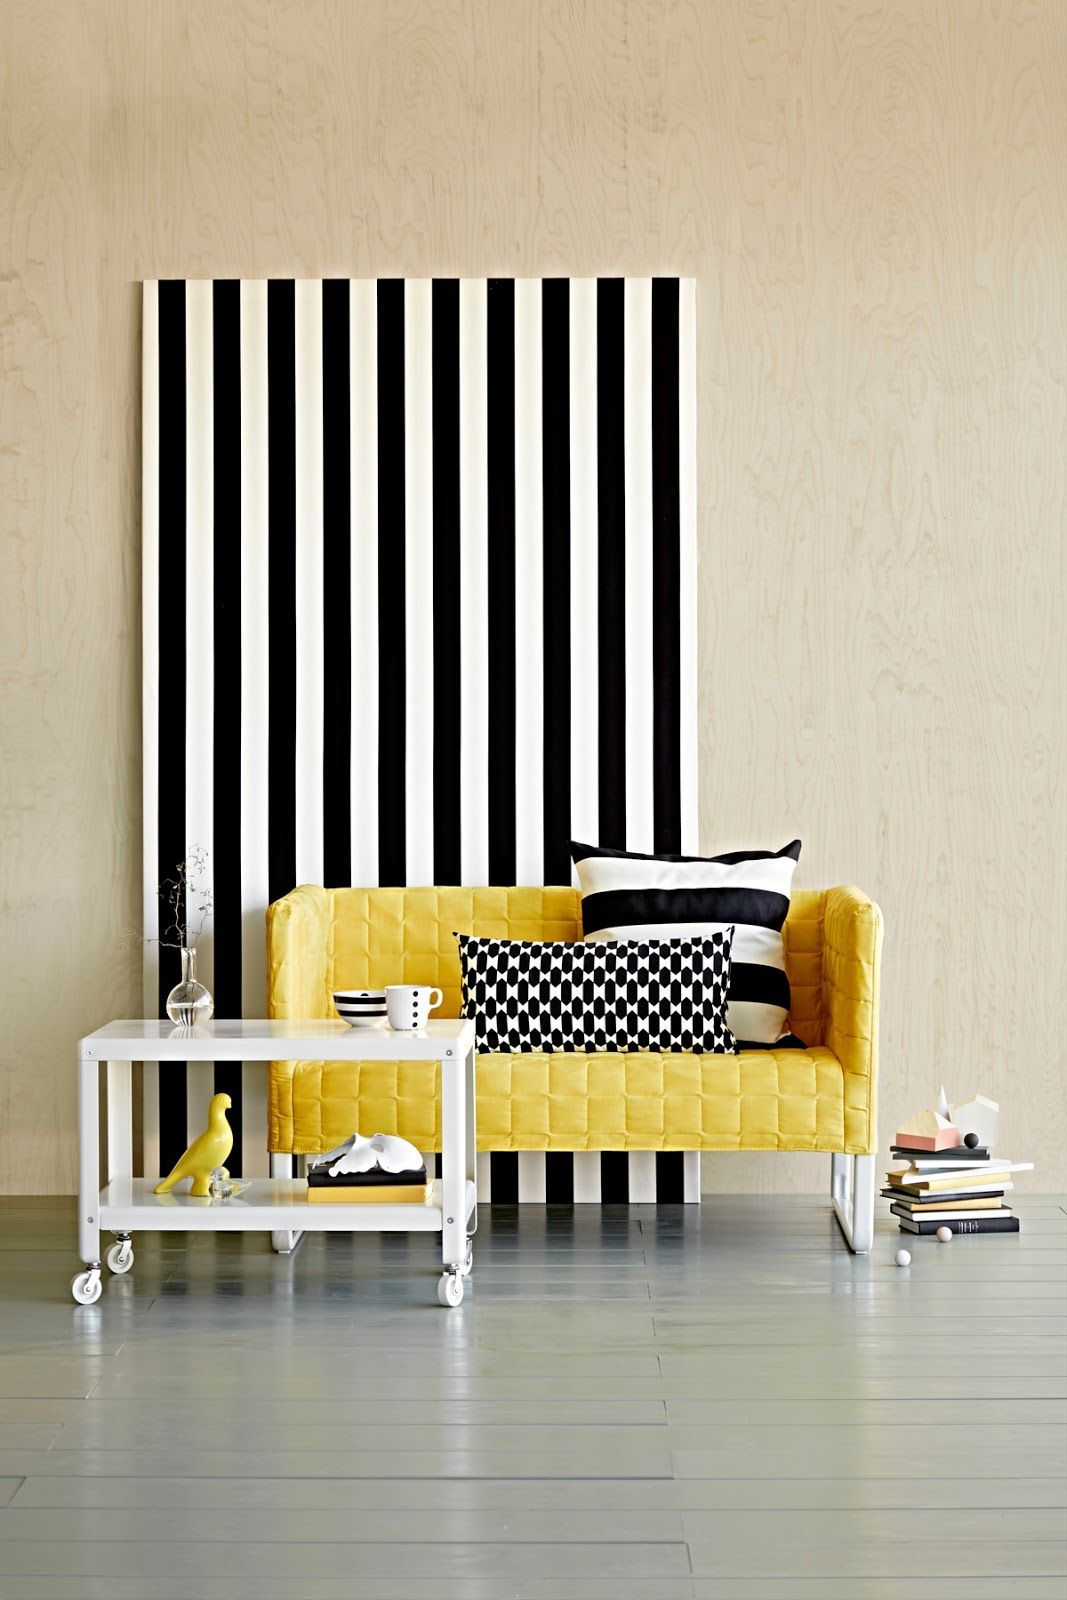 More Non Ps Ikea Items Planned For April Nordic Days - Ikea Ps Couchtisch Rollen